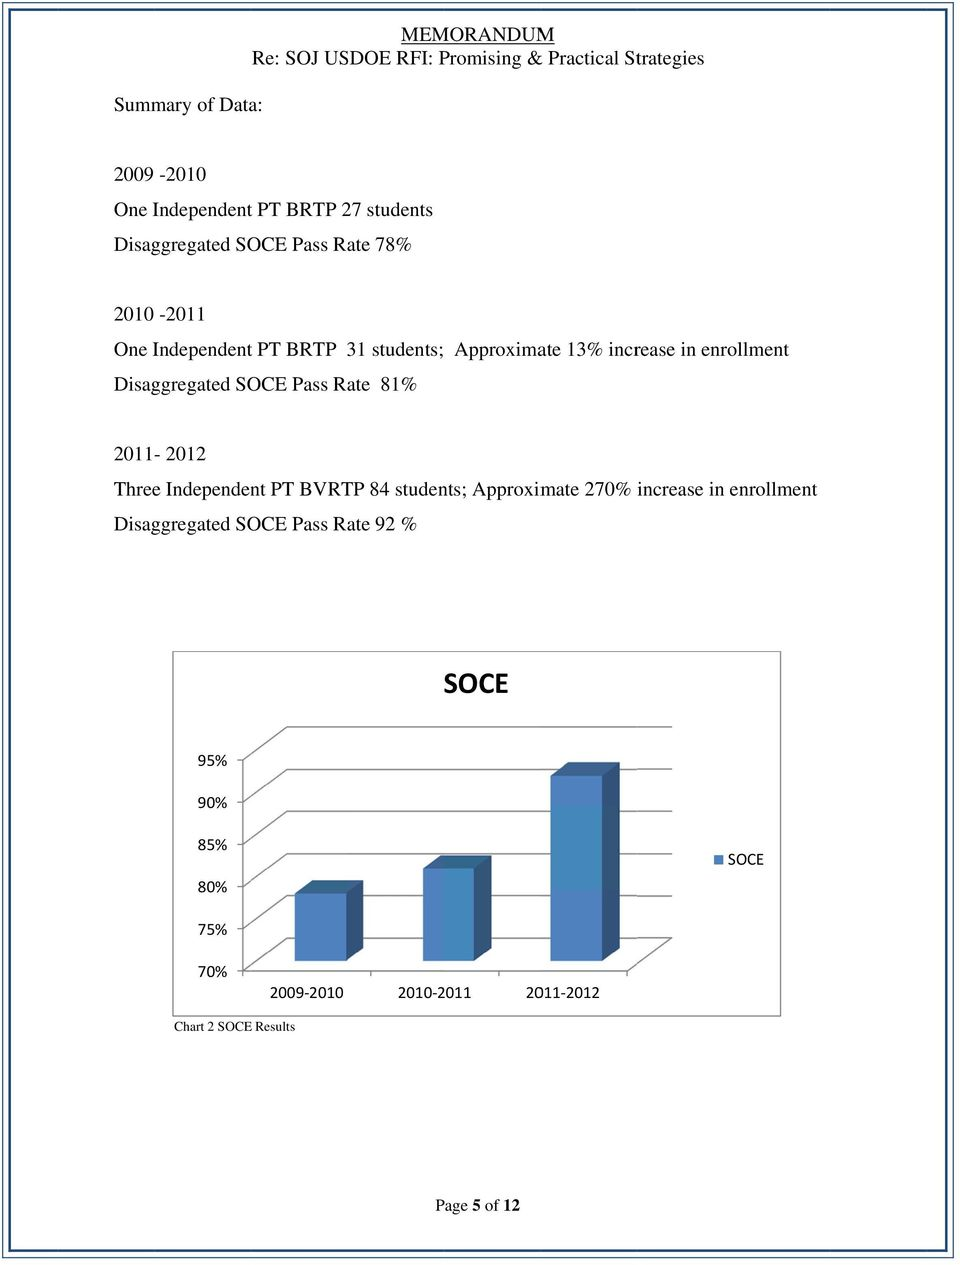 enrollment 2011-2012 Threee Independent PT BVRTP 84 students; Approximate 270% increase in enrollment